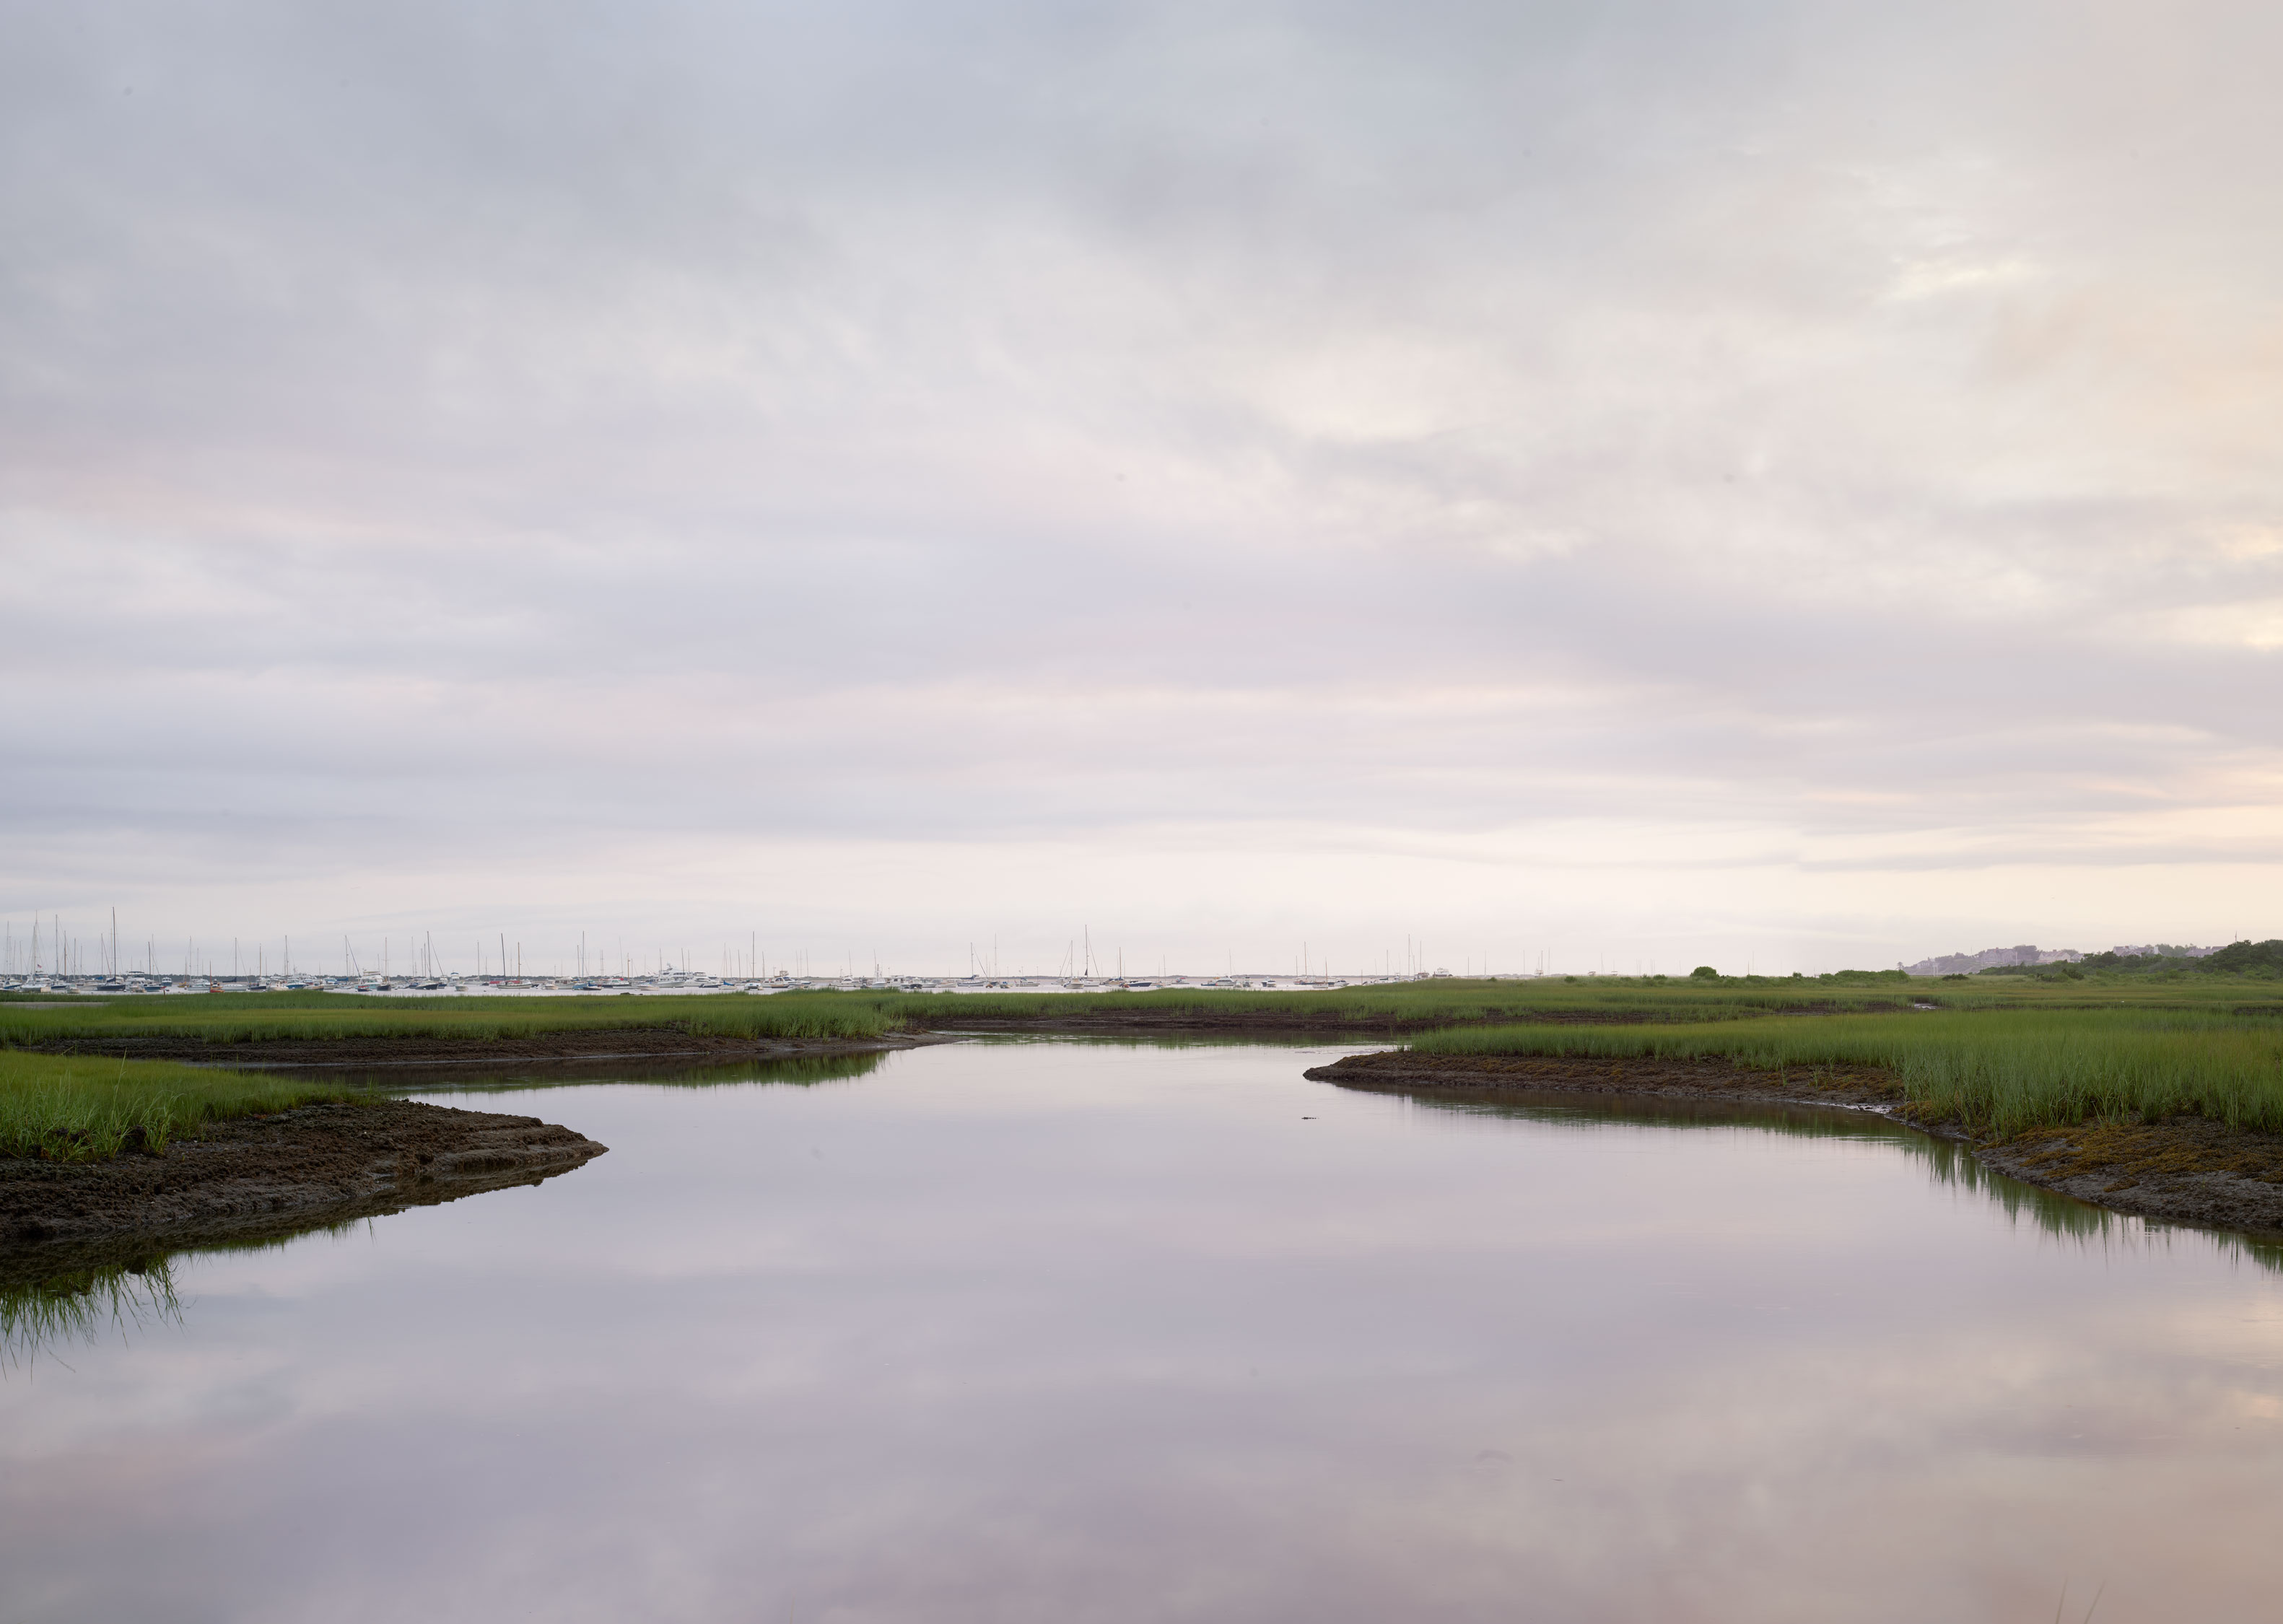 Creeks Dawn #654-658 |  Nantucket  |  Michael Gaillard